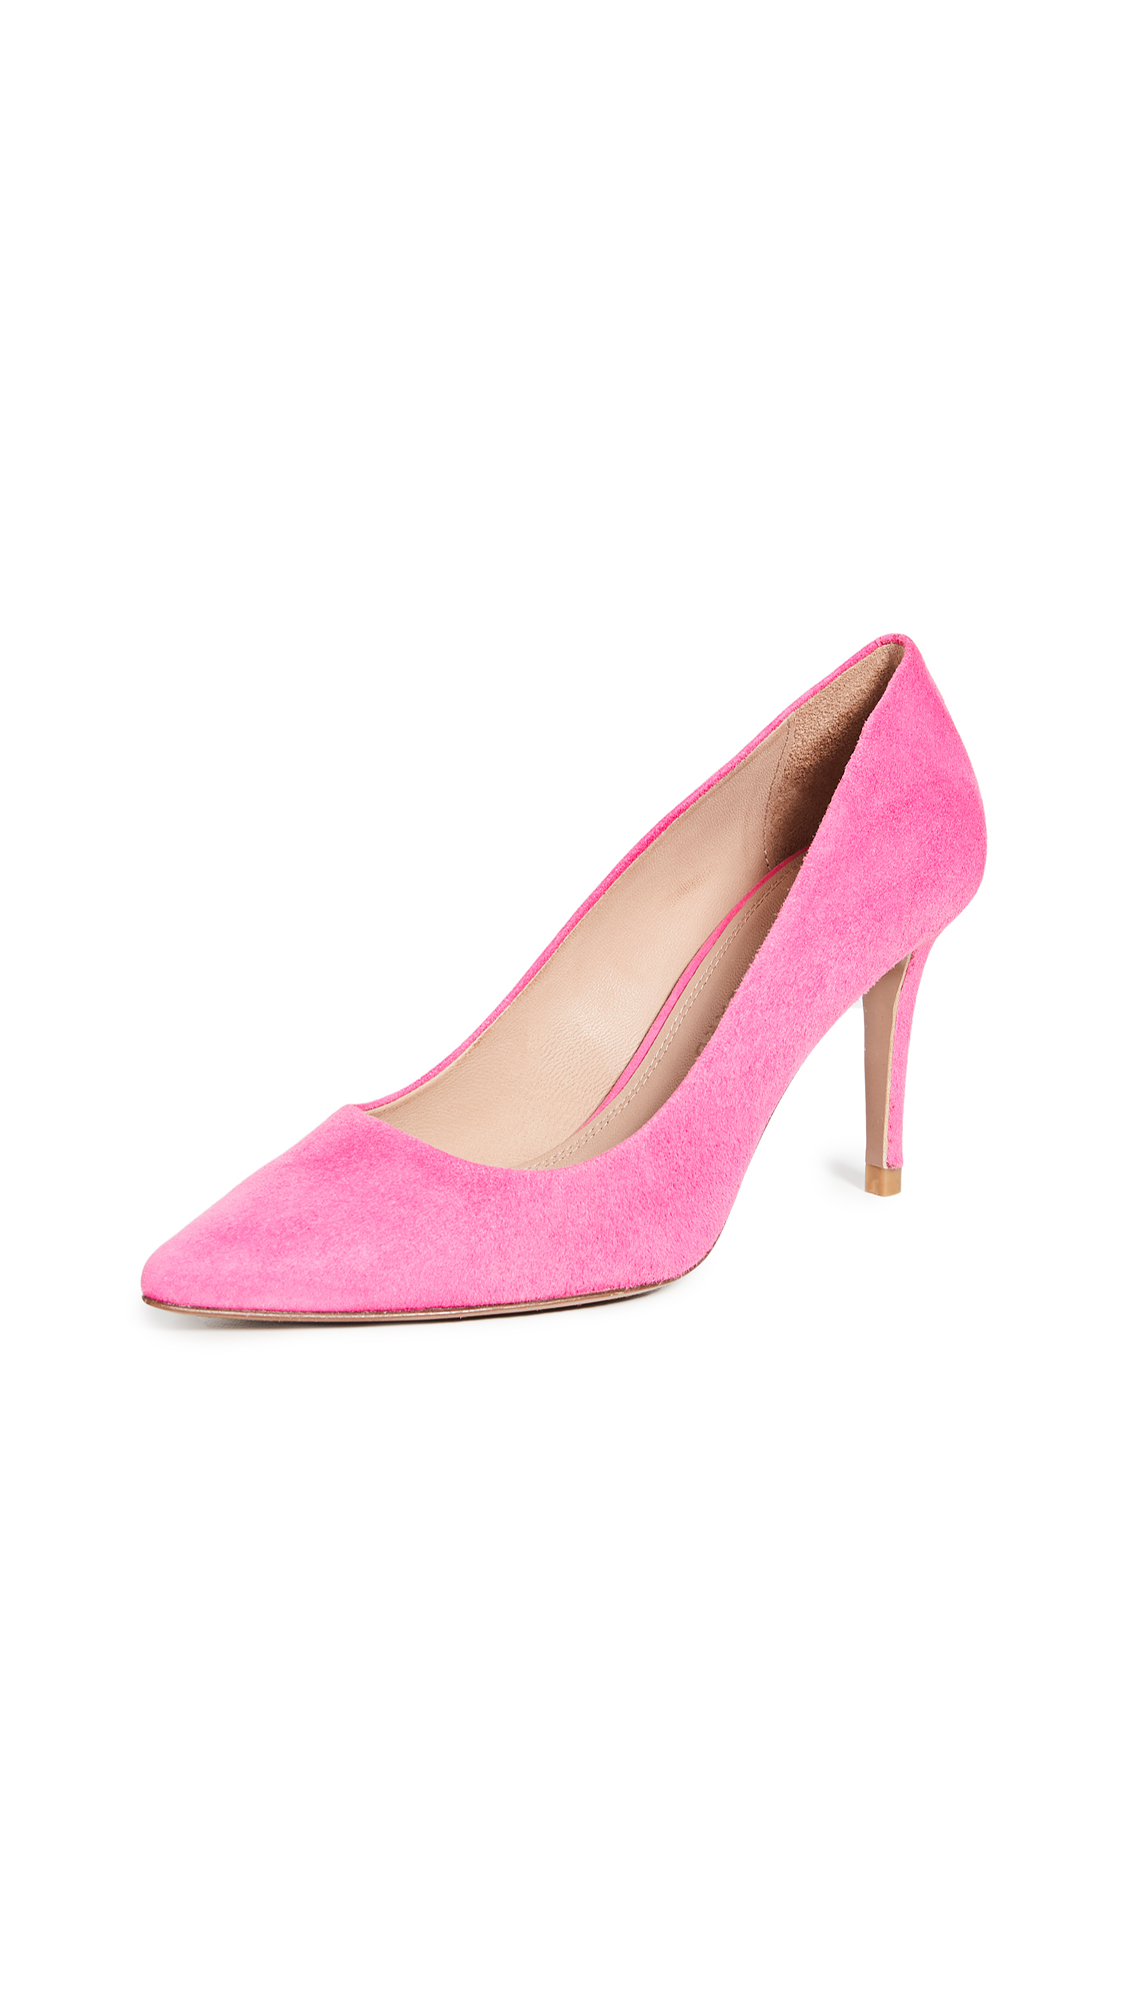 Buy Veronica Beard Aurora Pumps online, shop Veronica Beard